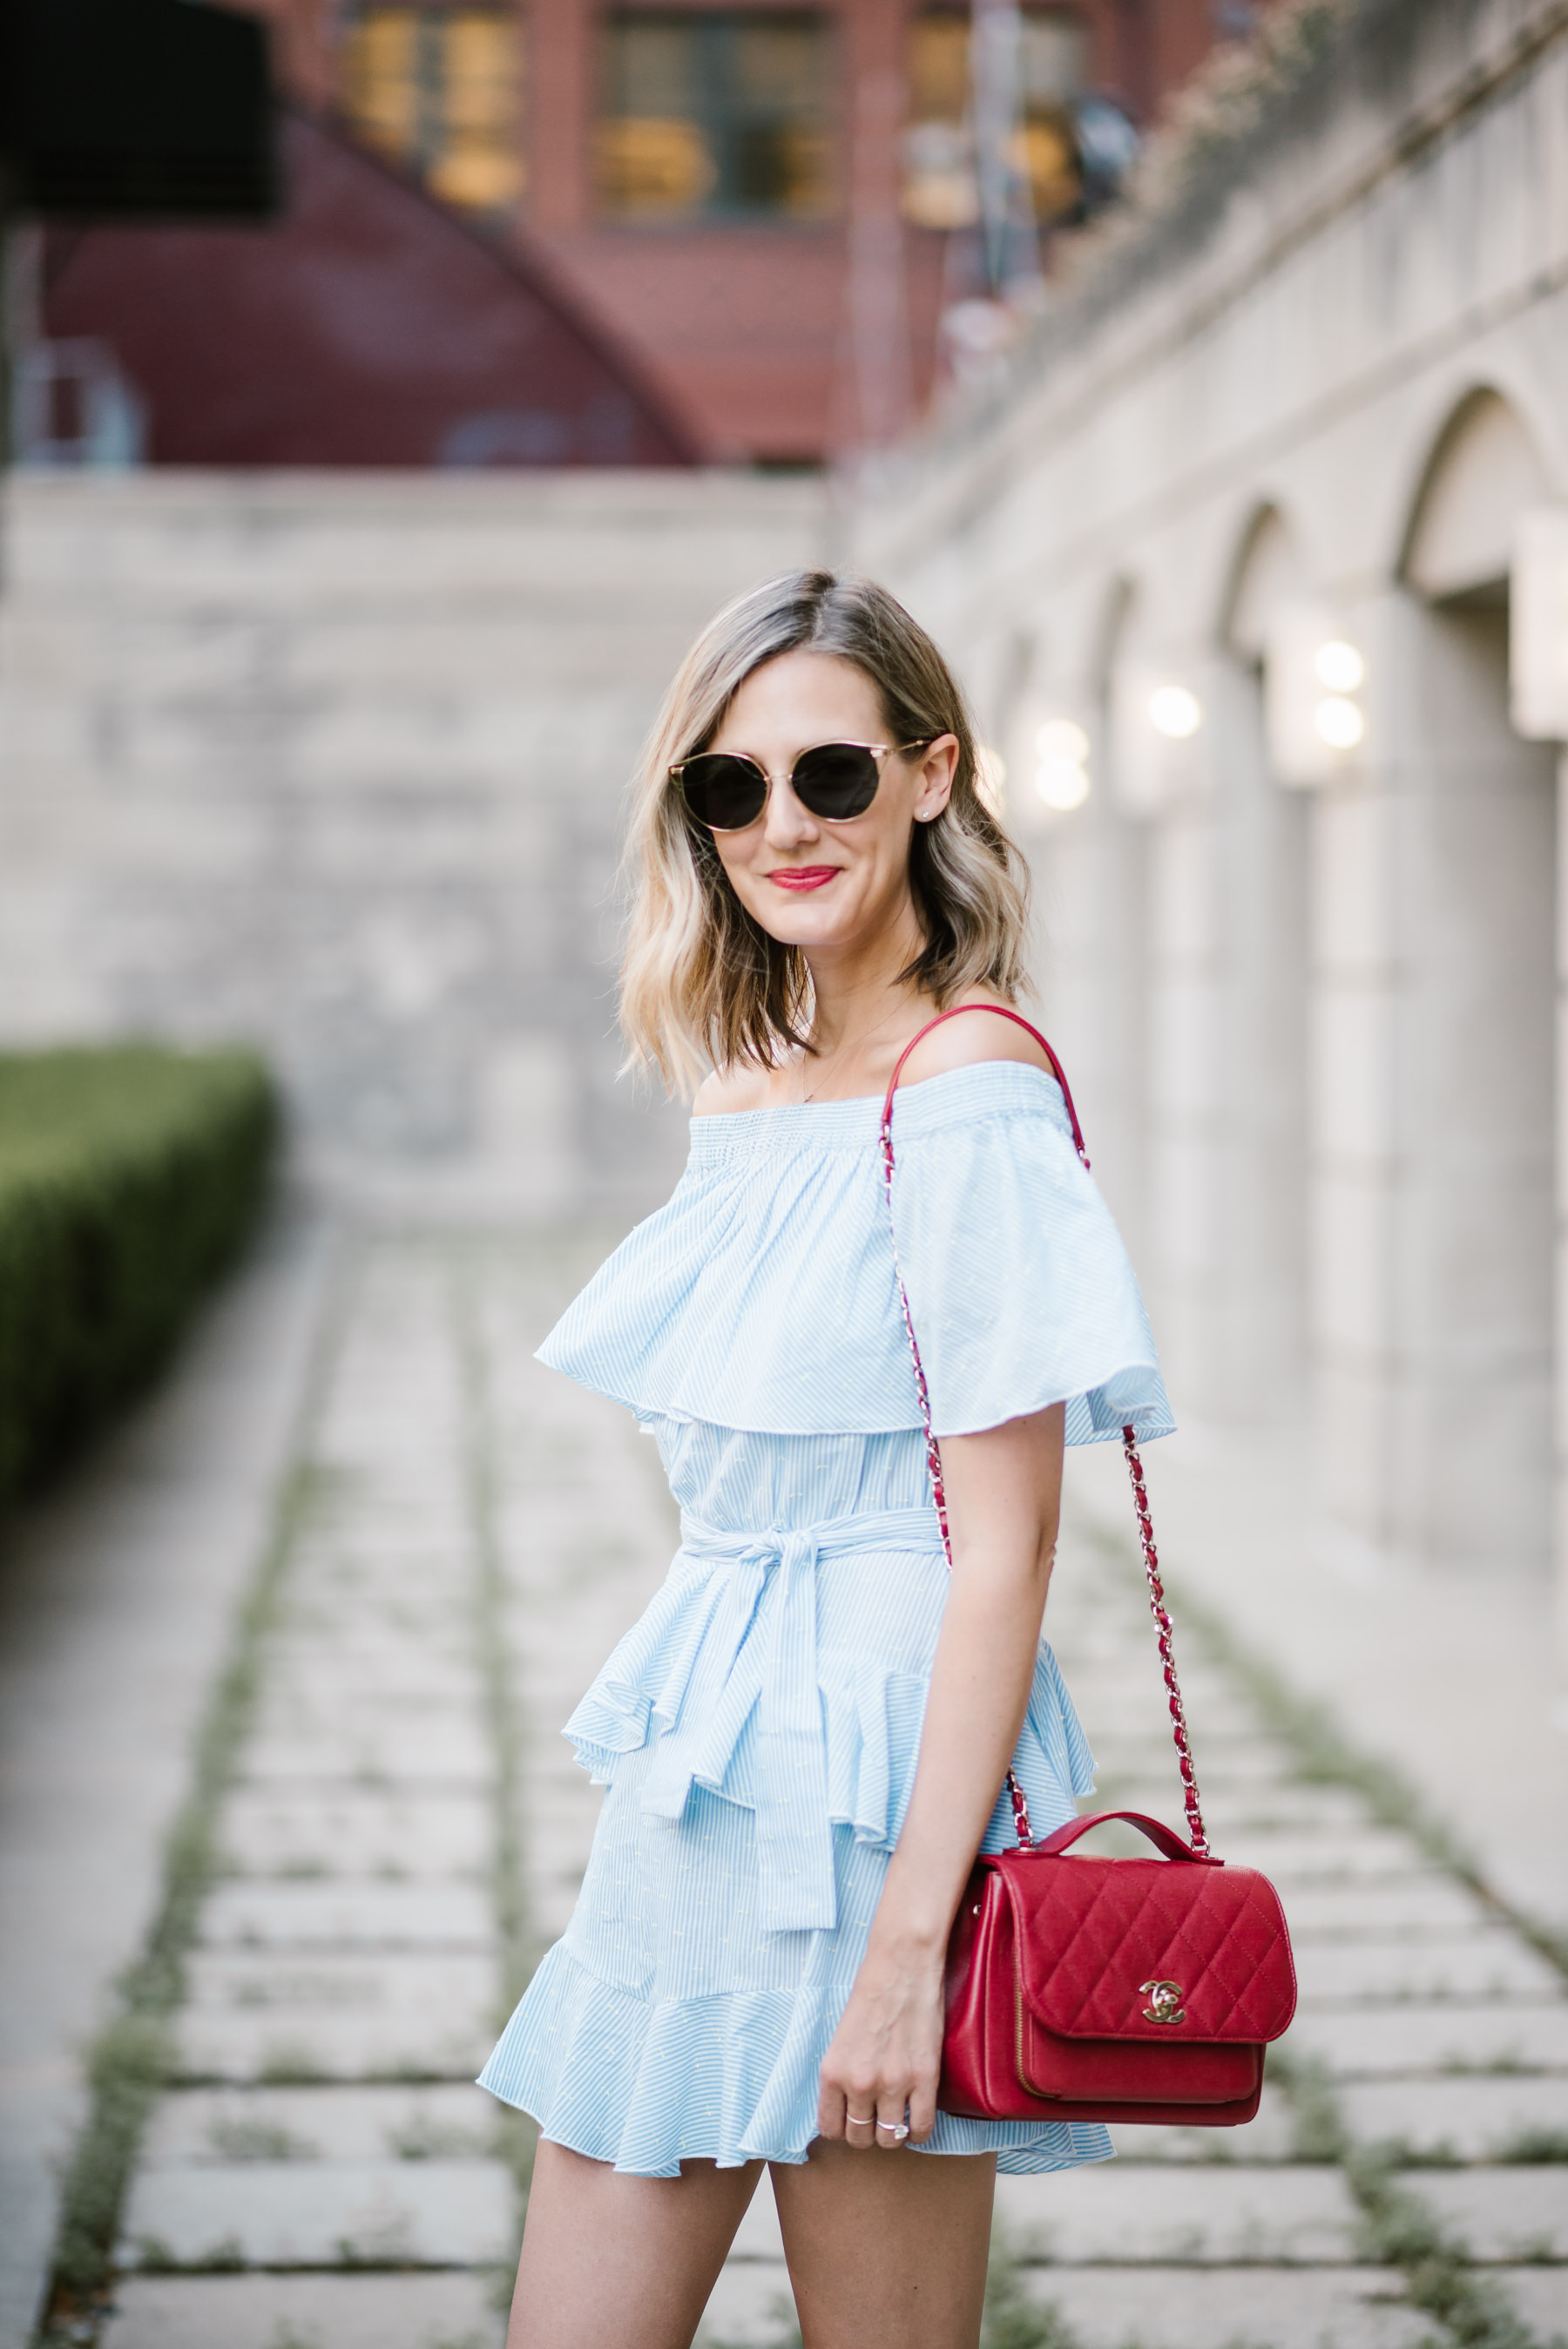 topshop off the shoulder dress sonix sunglasses